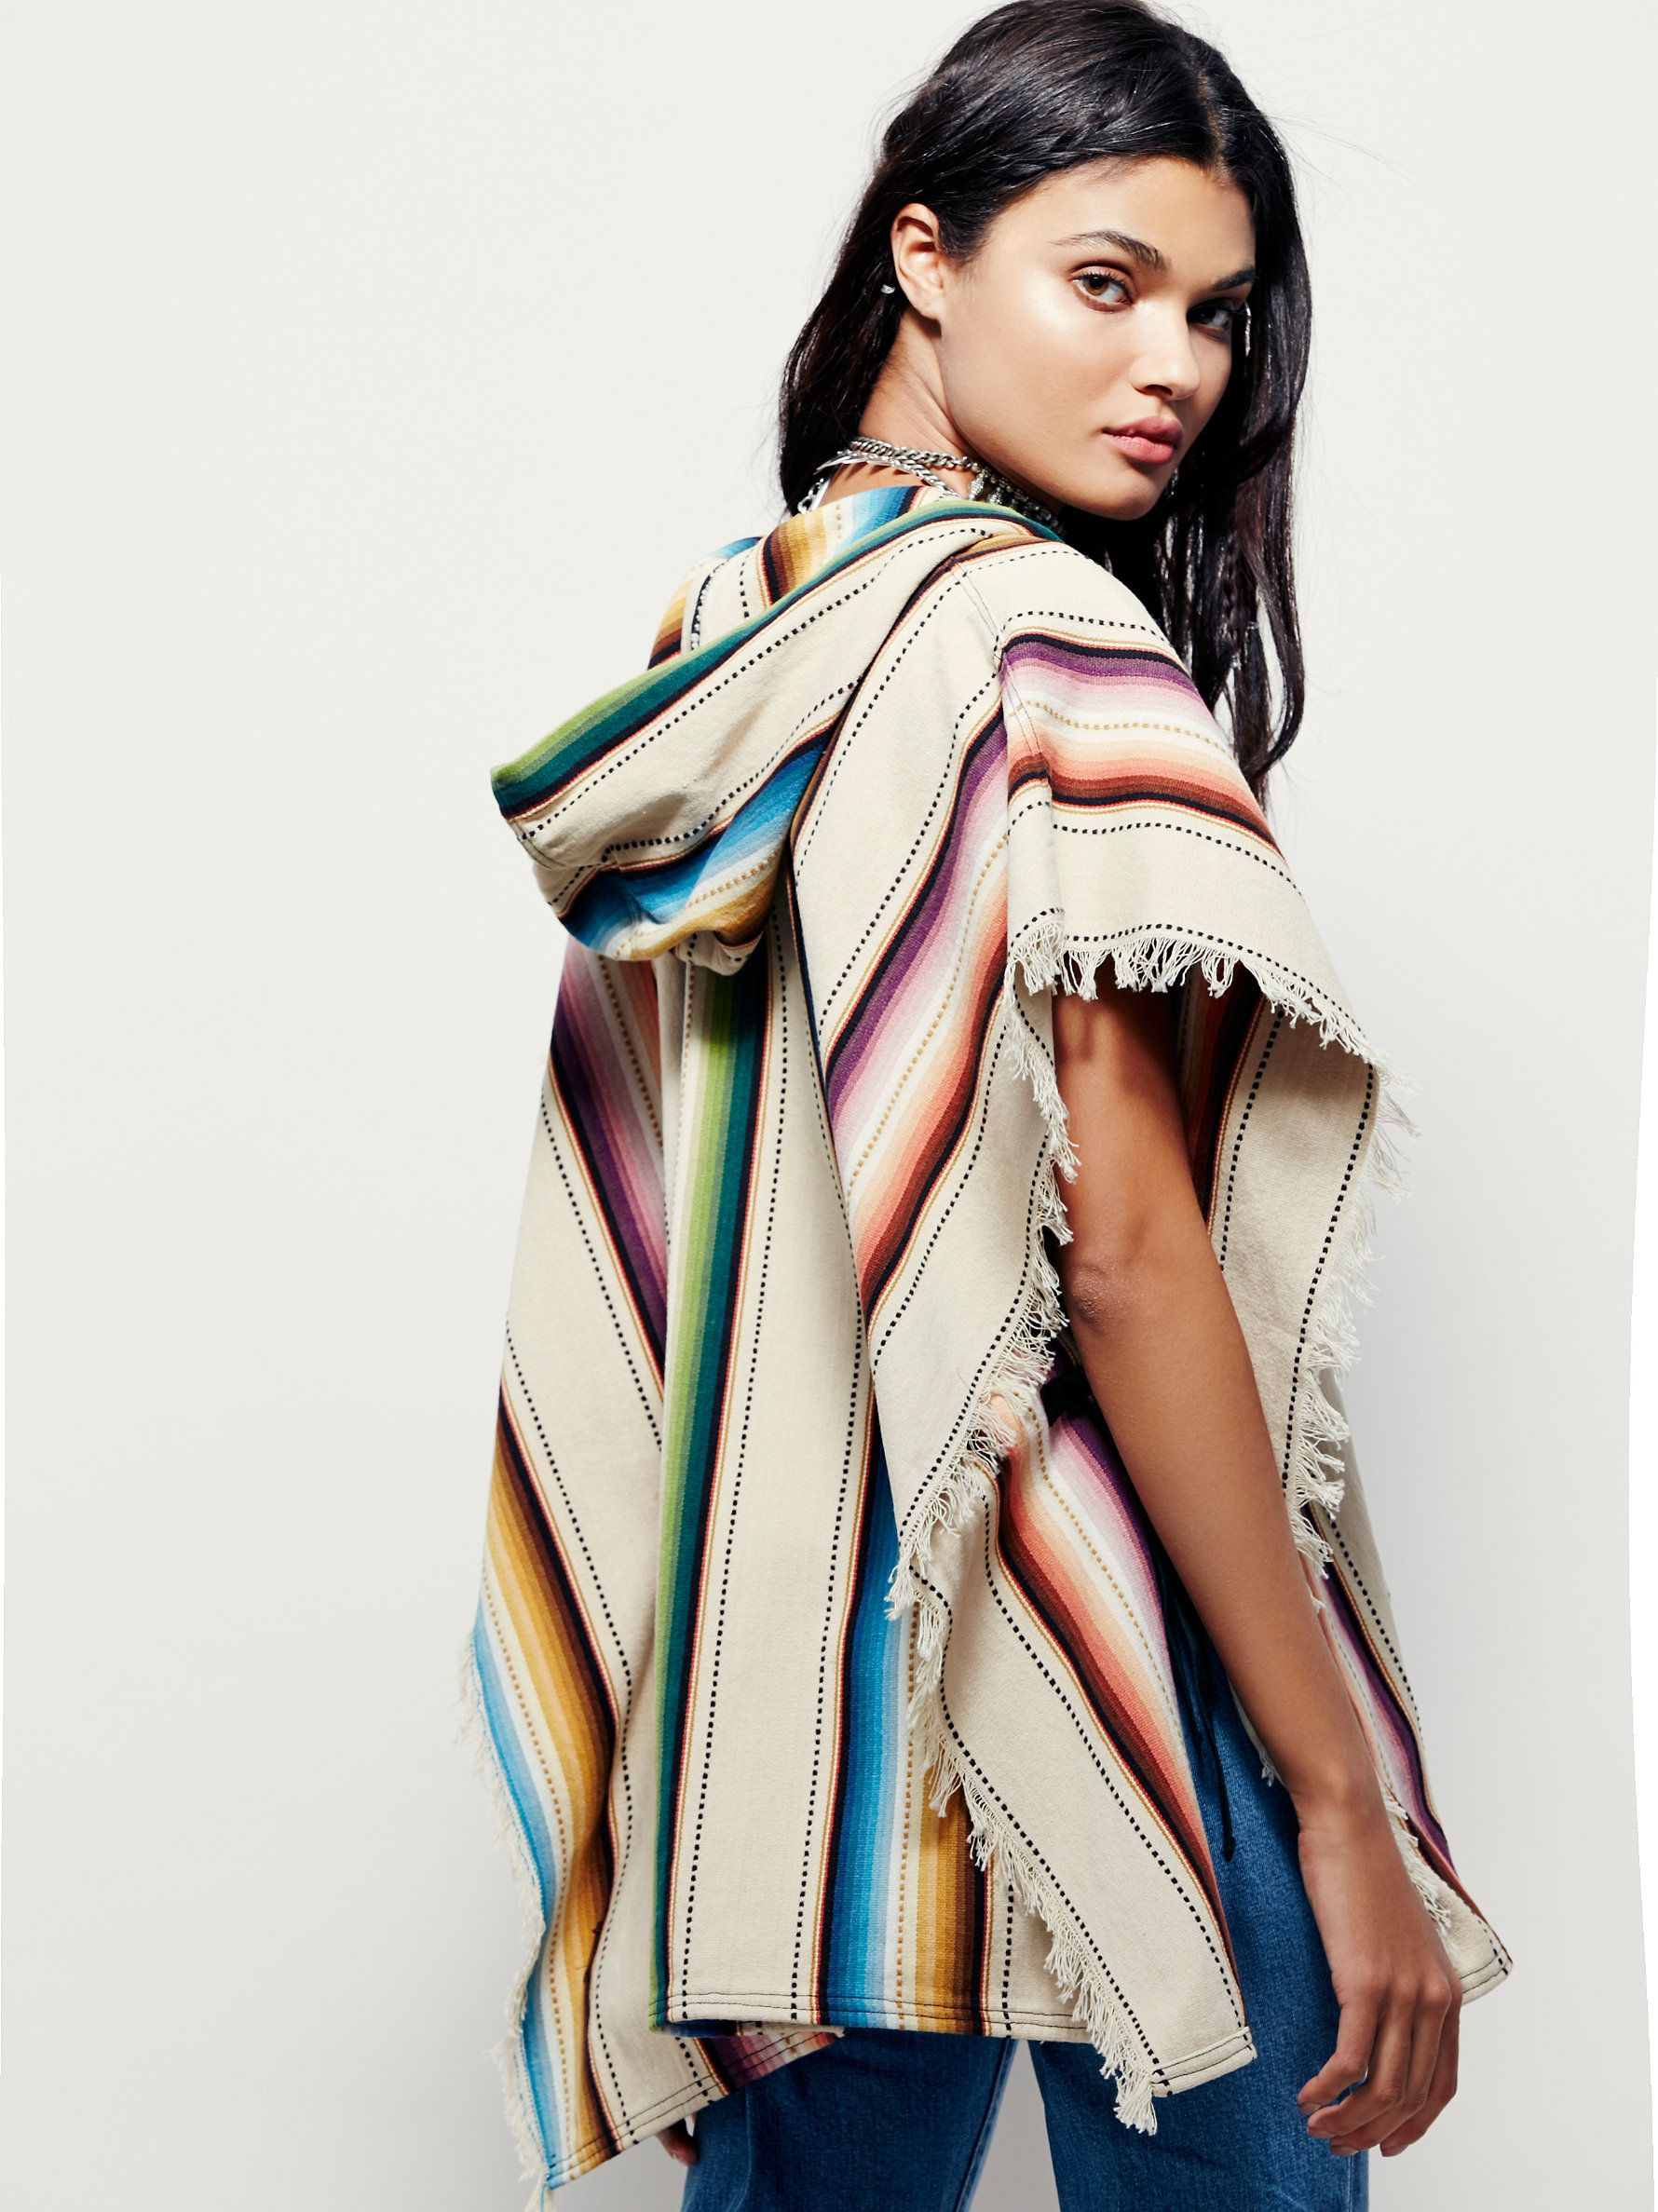 Jen's Pirate Booty Mountain Jam Poncho | In a tribal-inspired print, this American made hooded poncho features fringed trim and a front kangaroo pocket. Tie closures on the open sides.